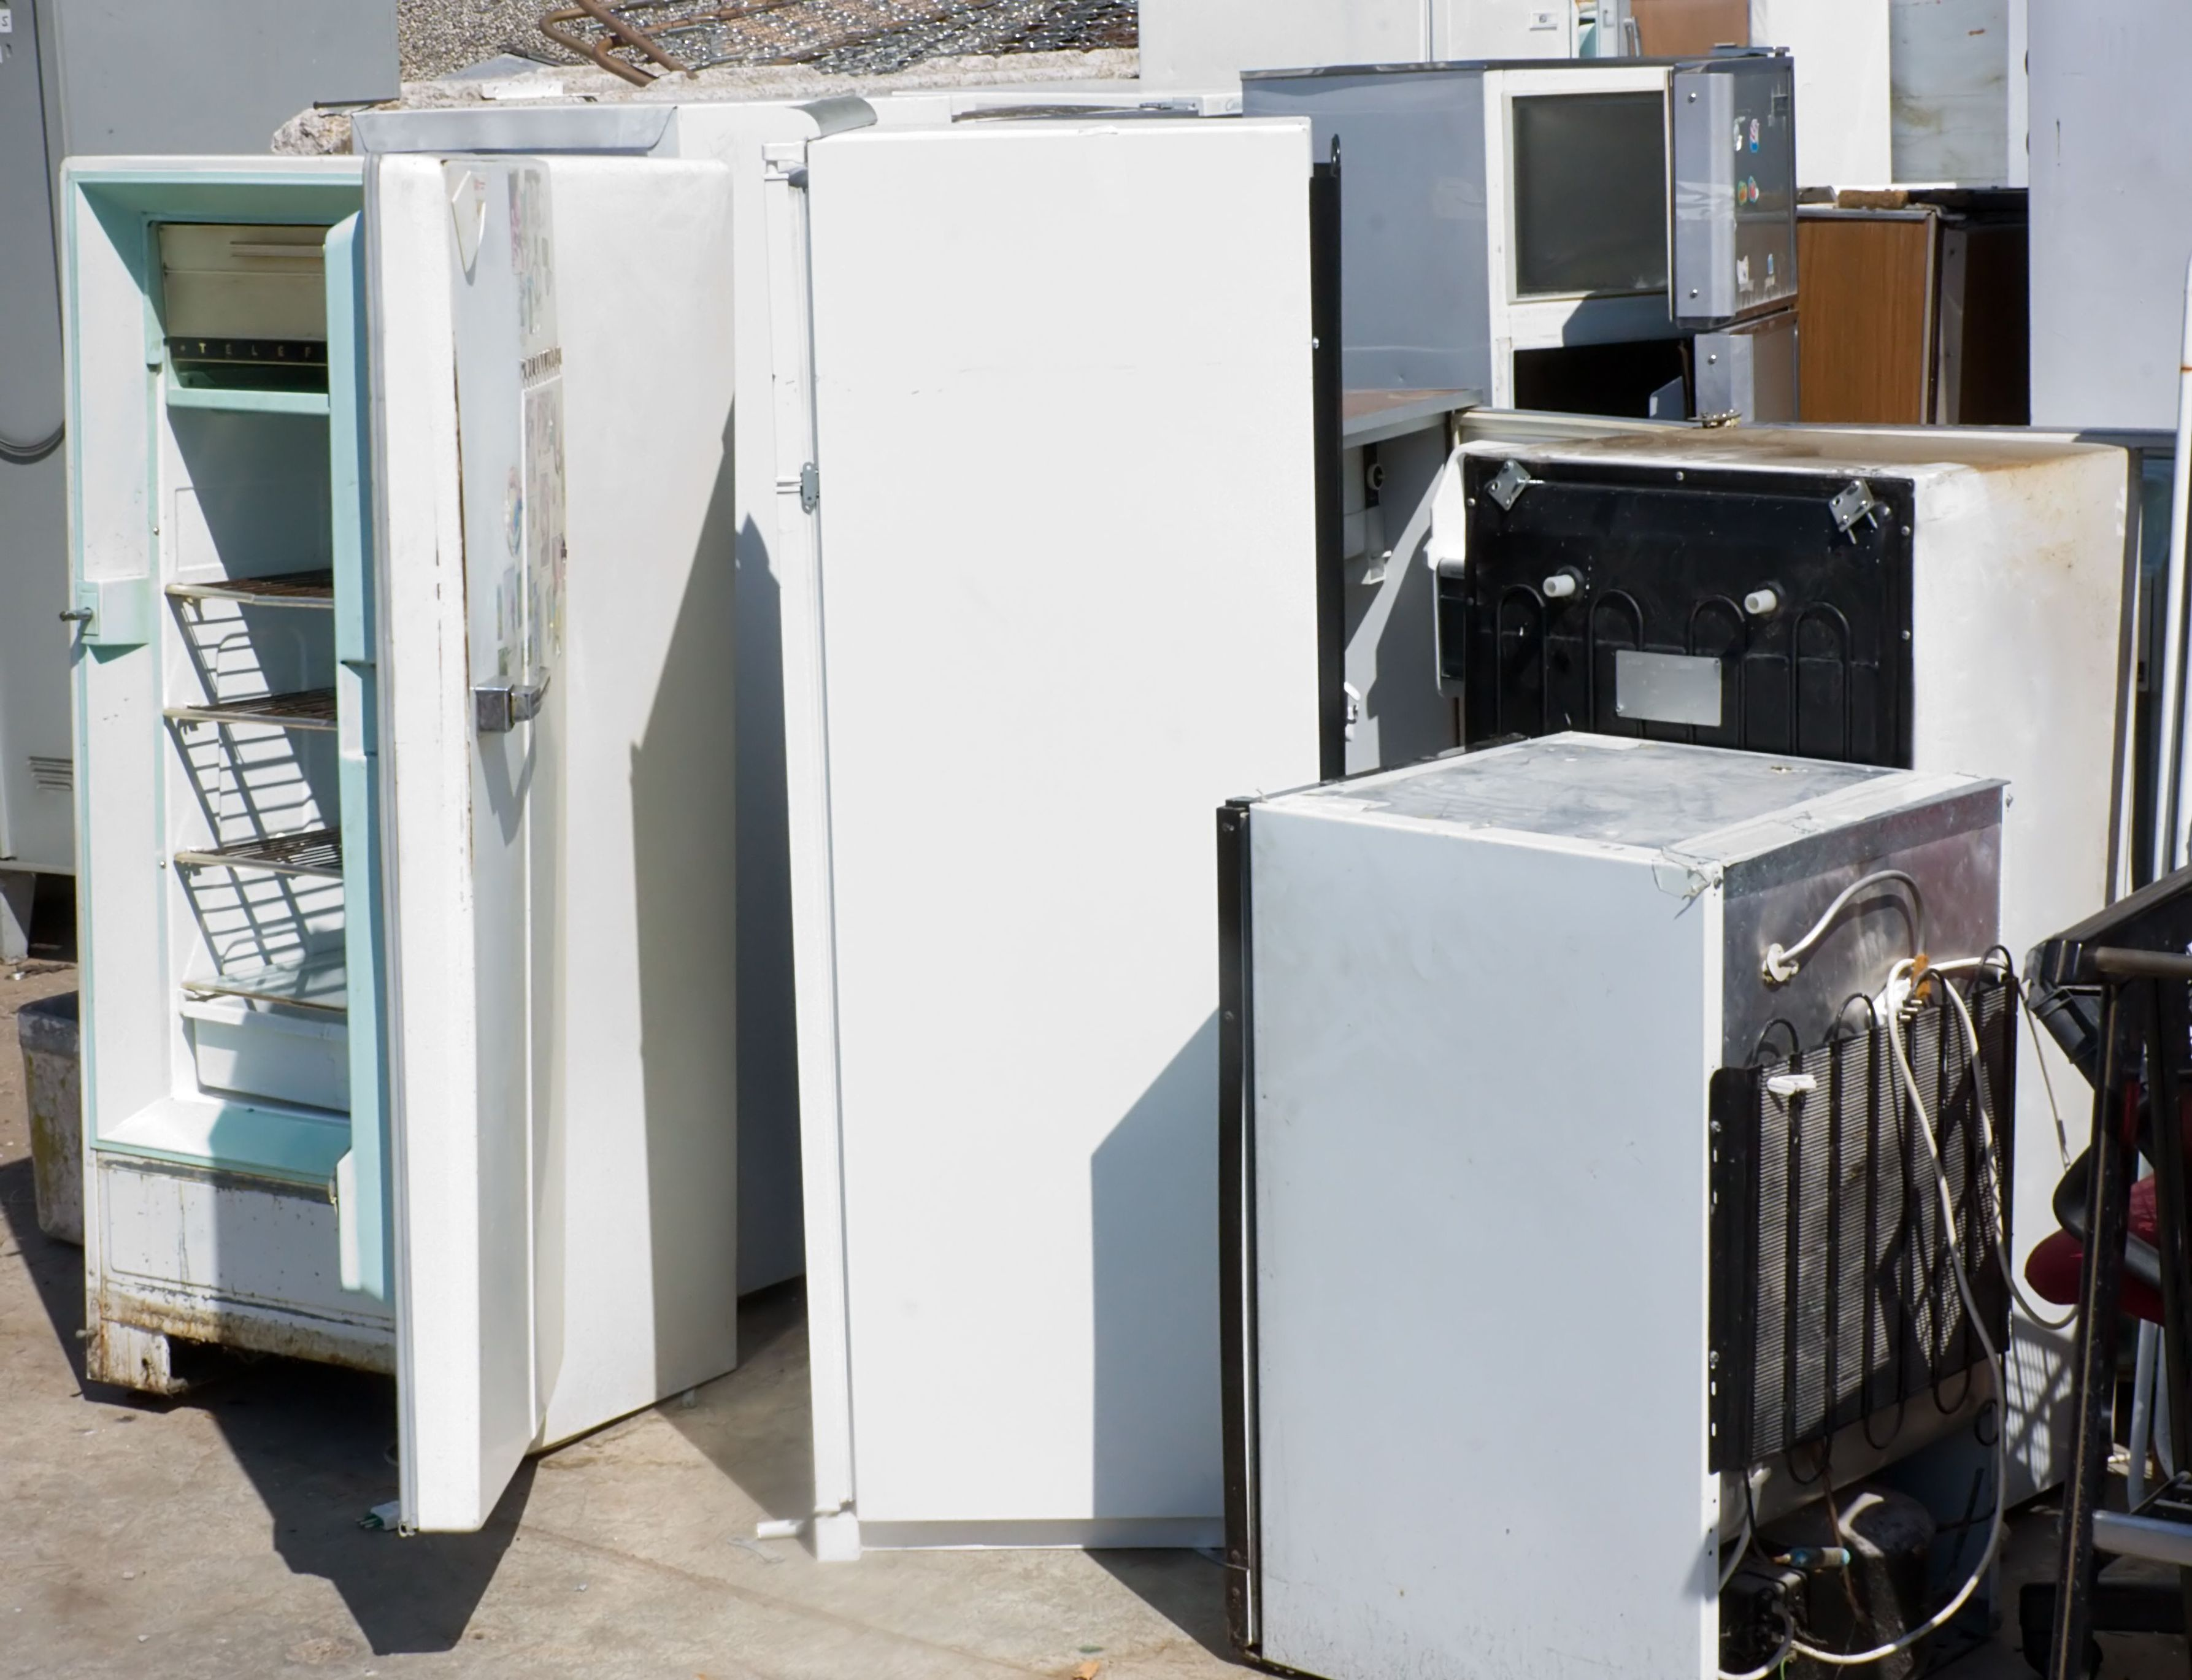 Why Hire a Professional for Refrigerator Repair